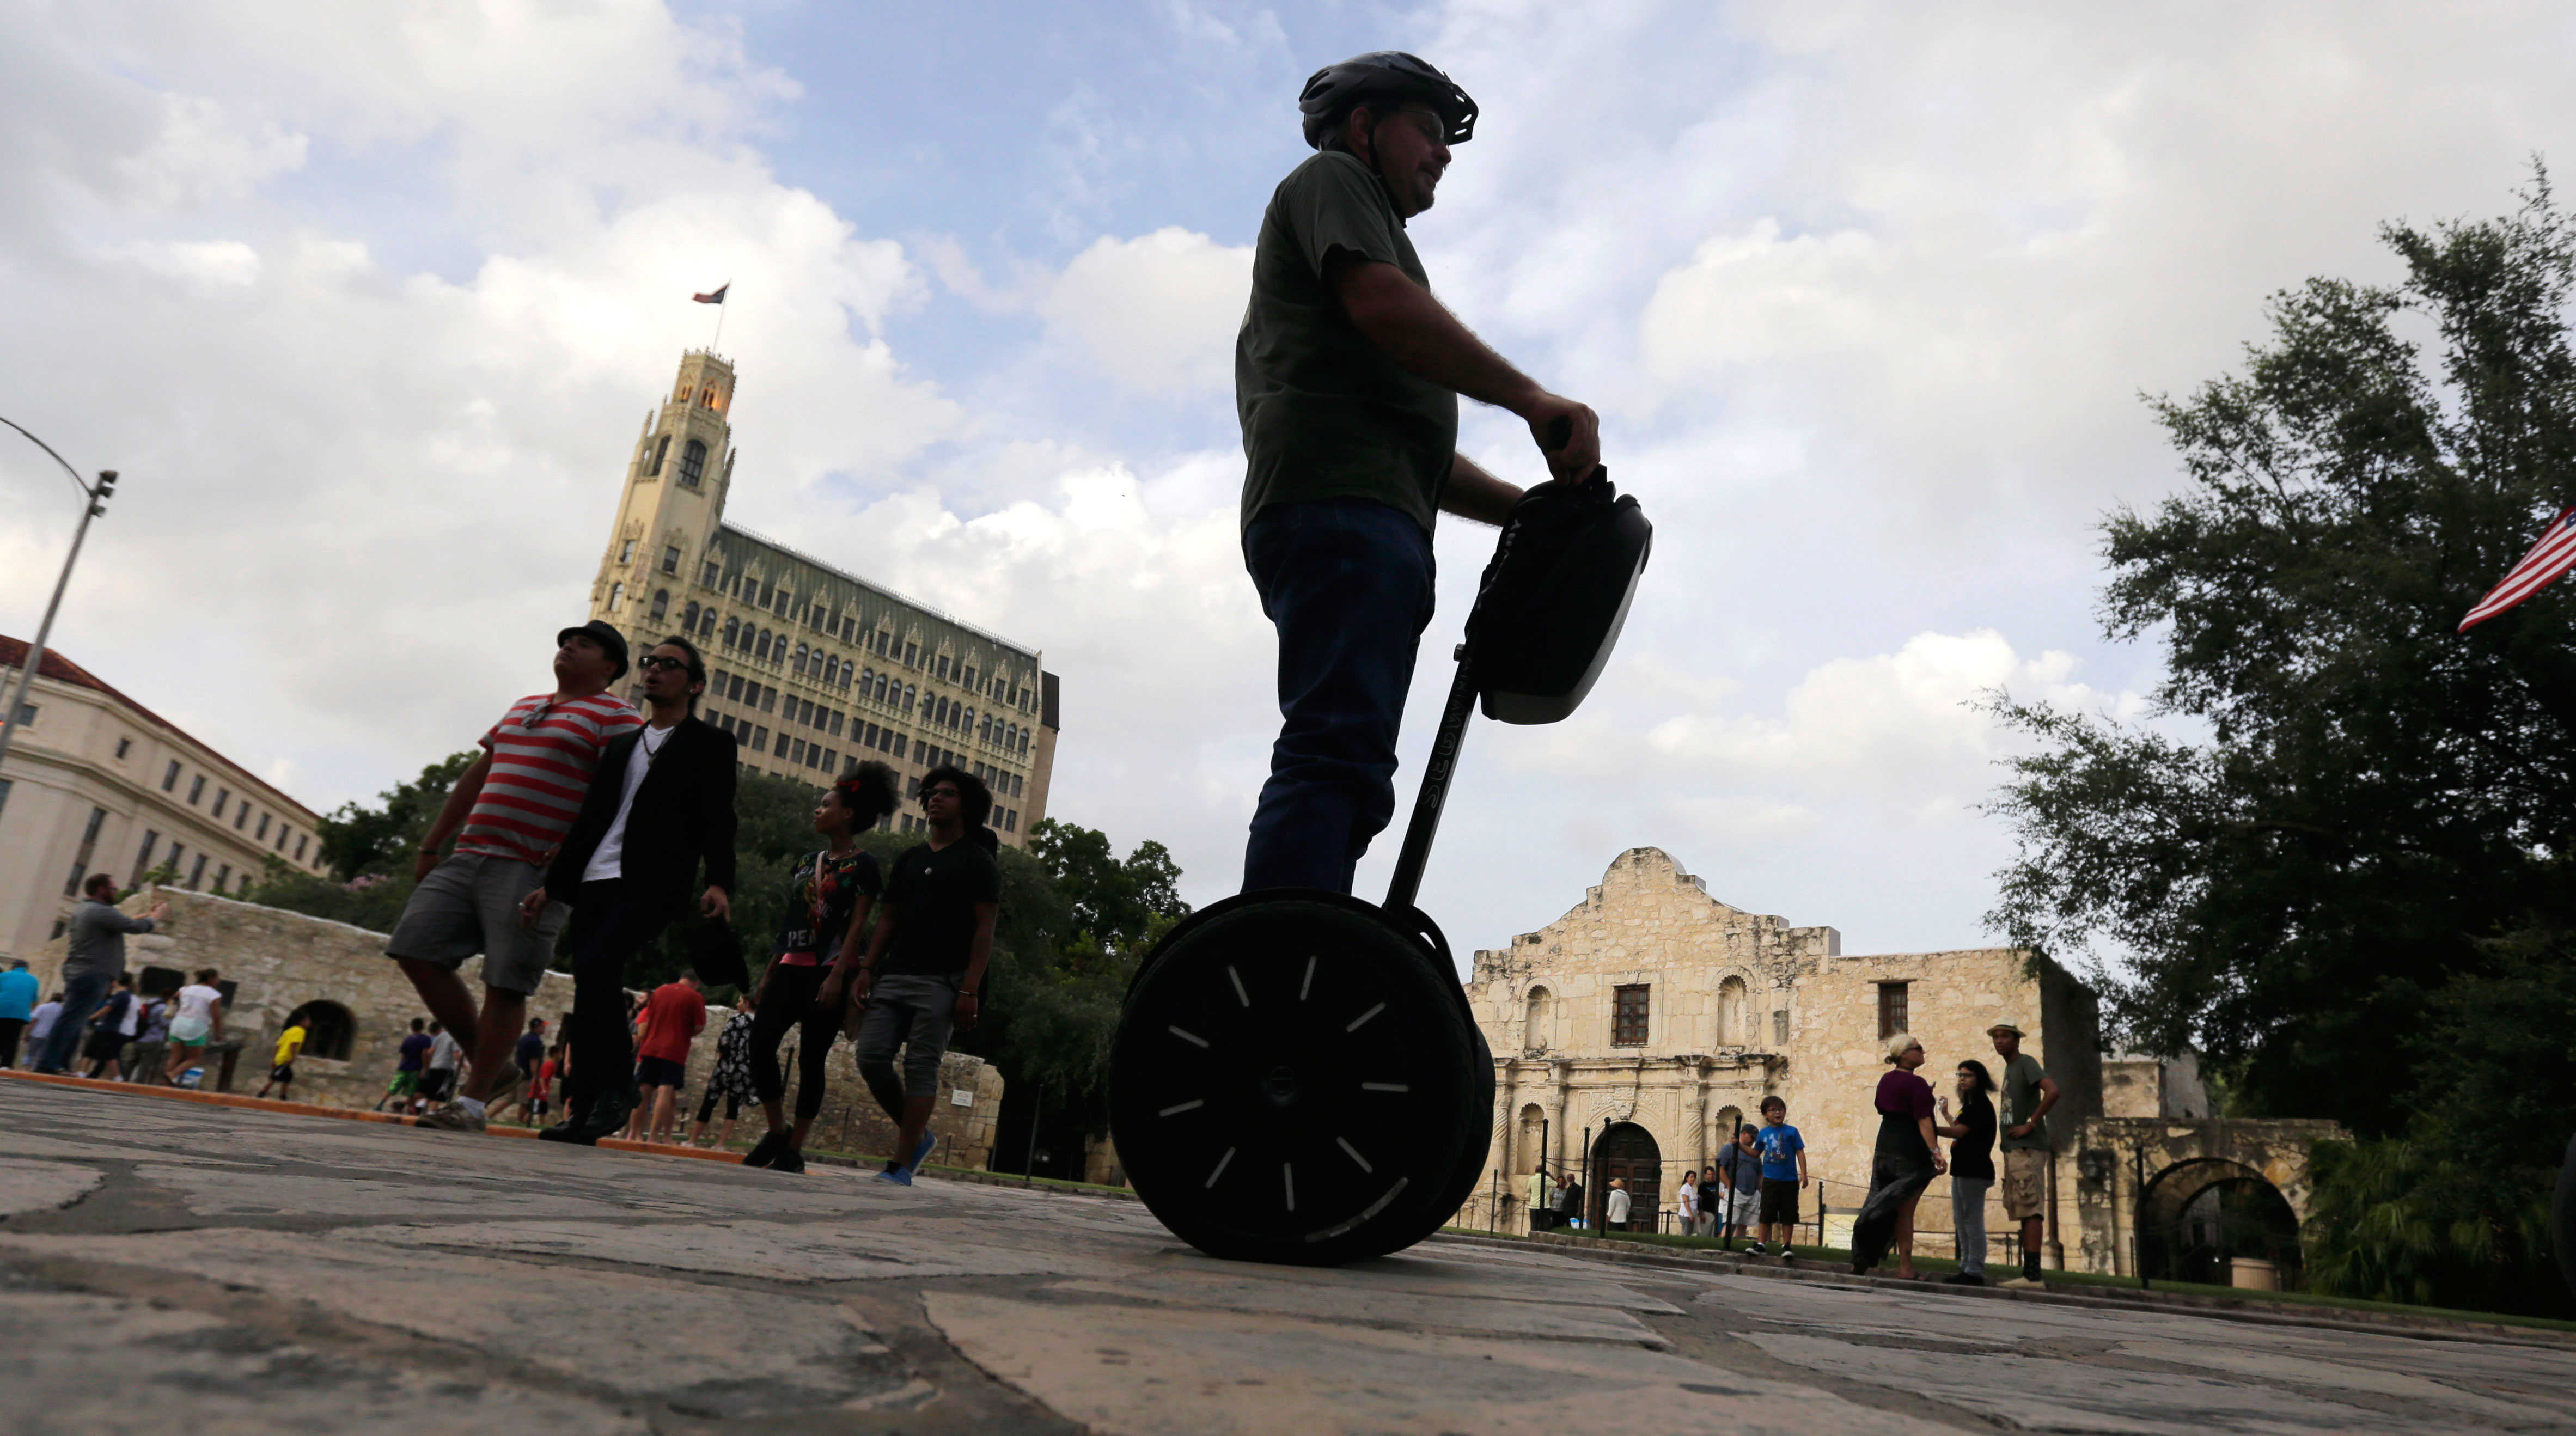 A visitor passes the Alamo on a Segway, Wednesday, July 8, 2015, in downtown San Antonio. San Antonio is one of Texas' top tourist destinations. (AP Photo/Eric Gay)